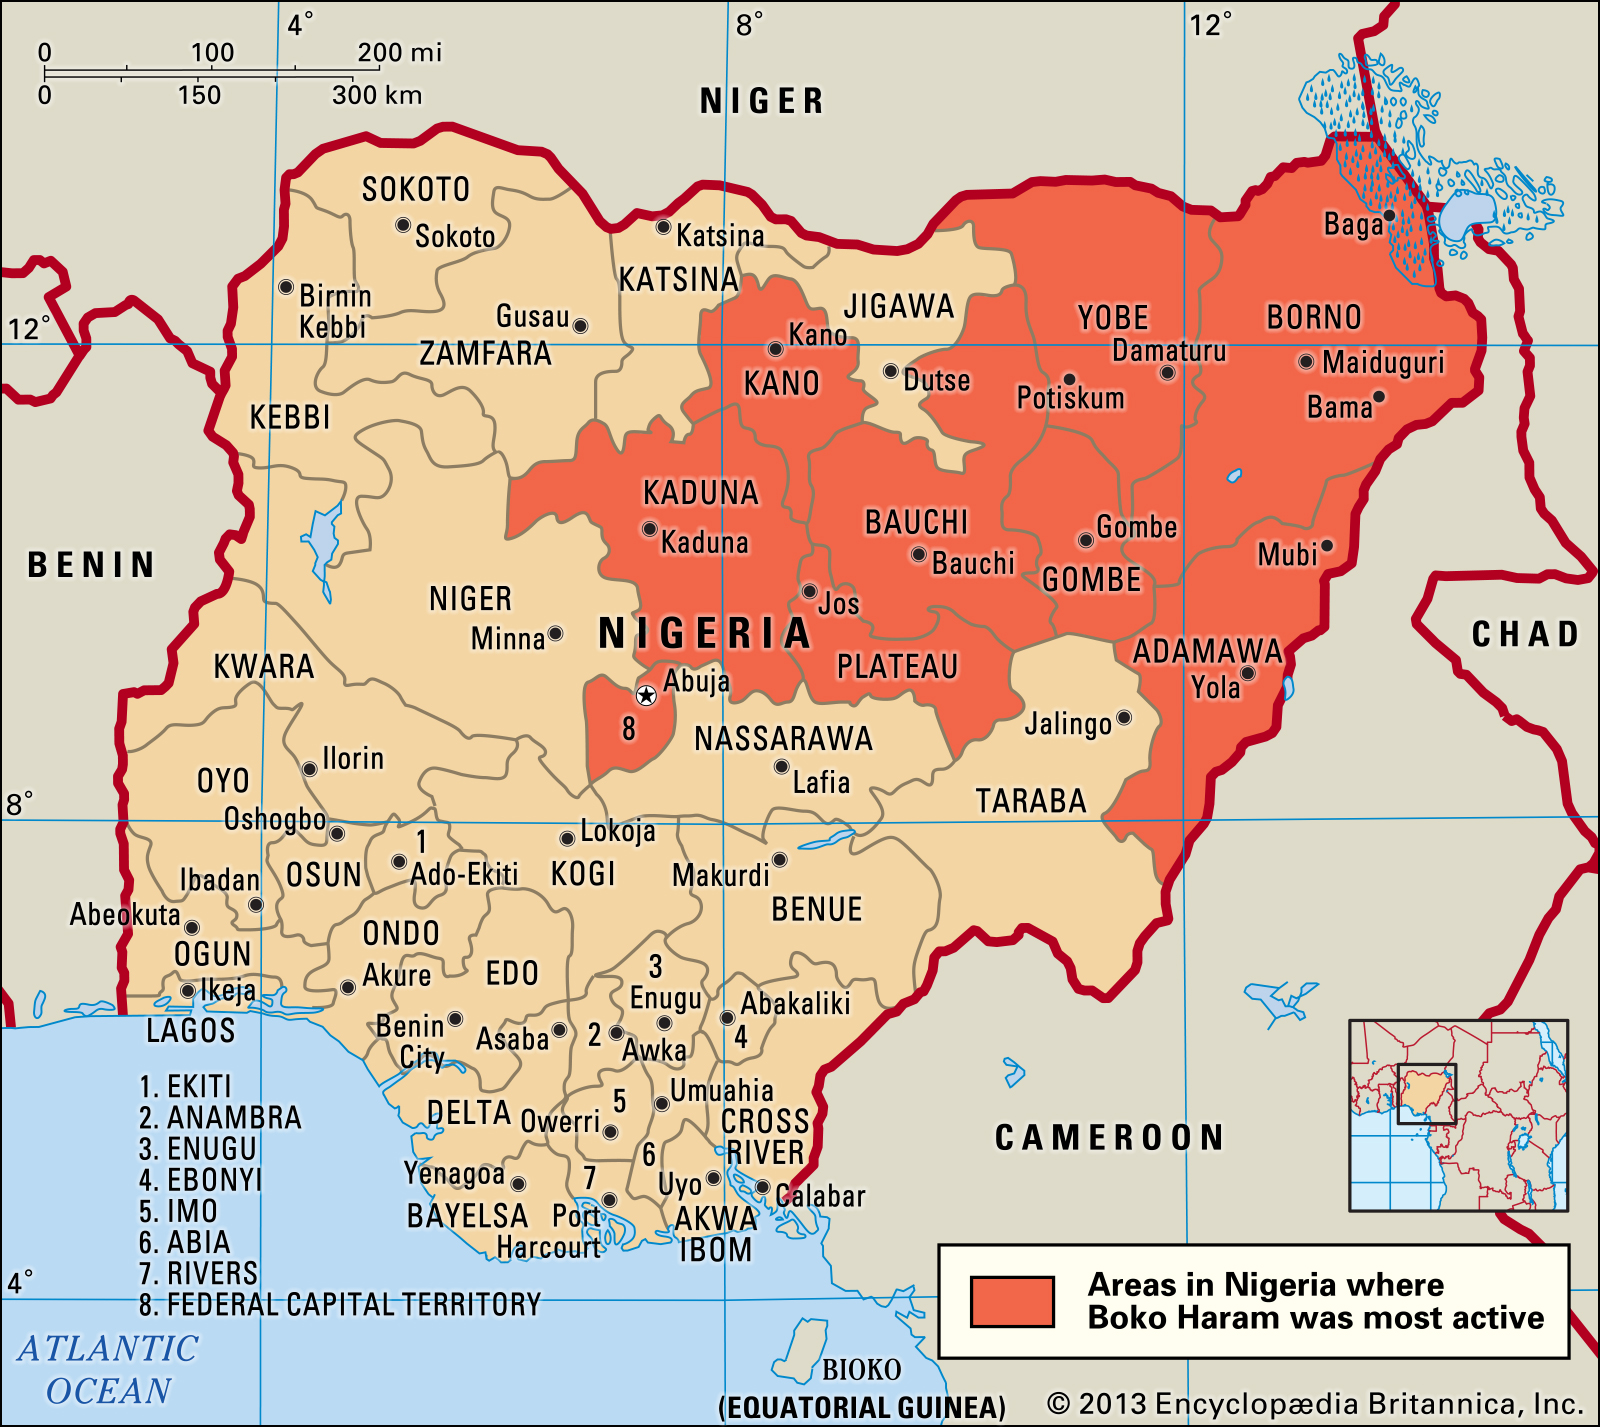 Boko Haram insurgency has had a devastating impact on the region. The group has been trying to establish an Islamist state in northeastern Nigeria